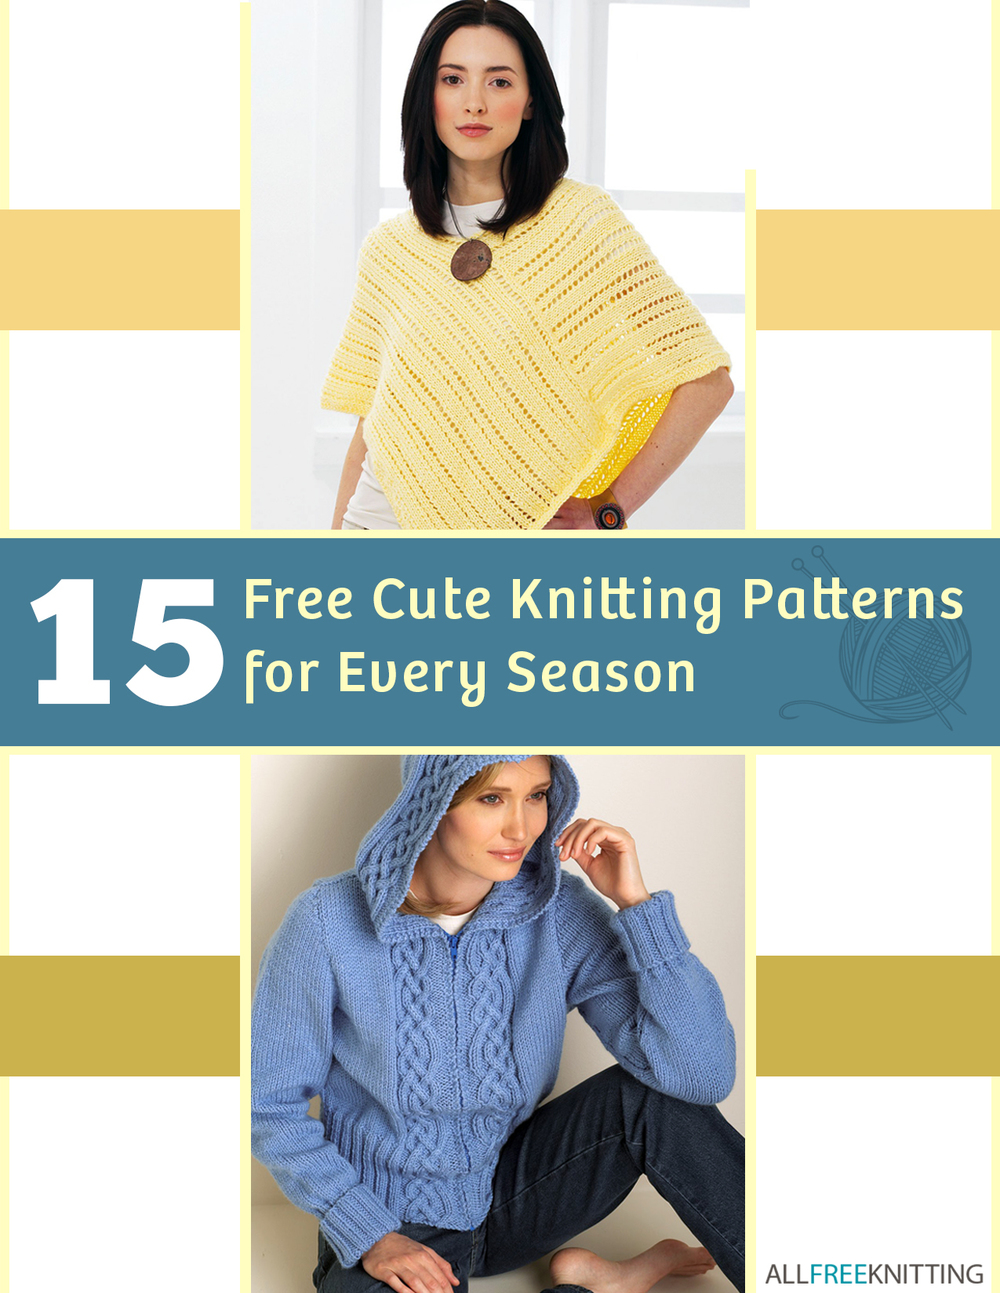 15 Free Cute Knitting Patterns for Every Season\